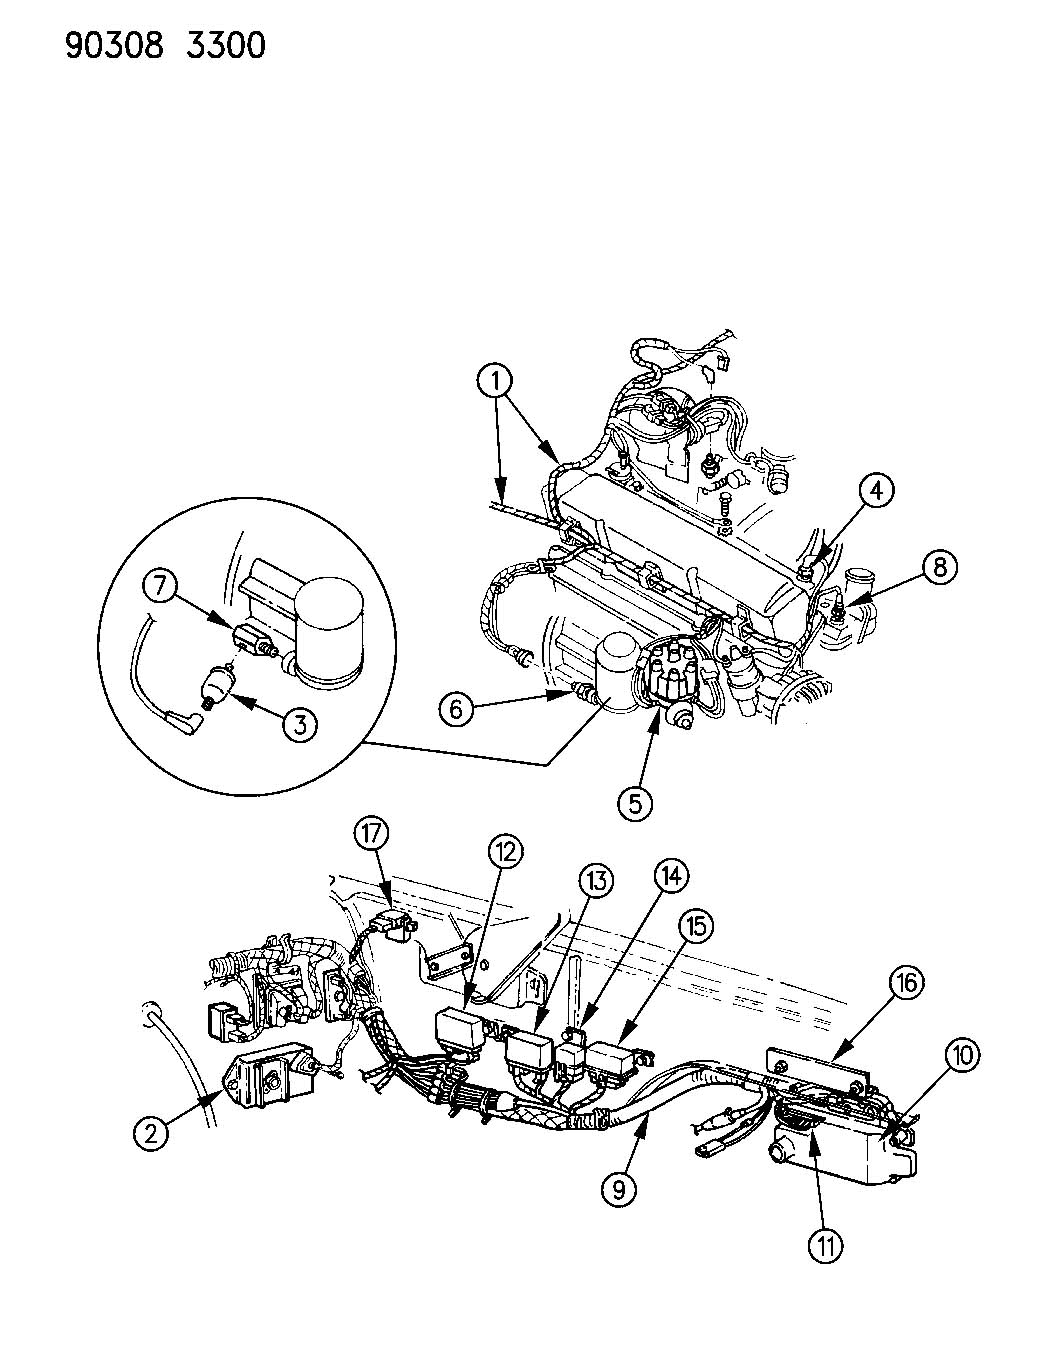 Honda cbr900rr fuel pump wiring diagram